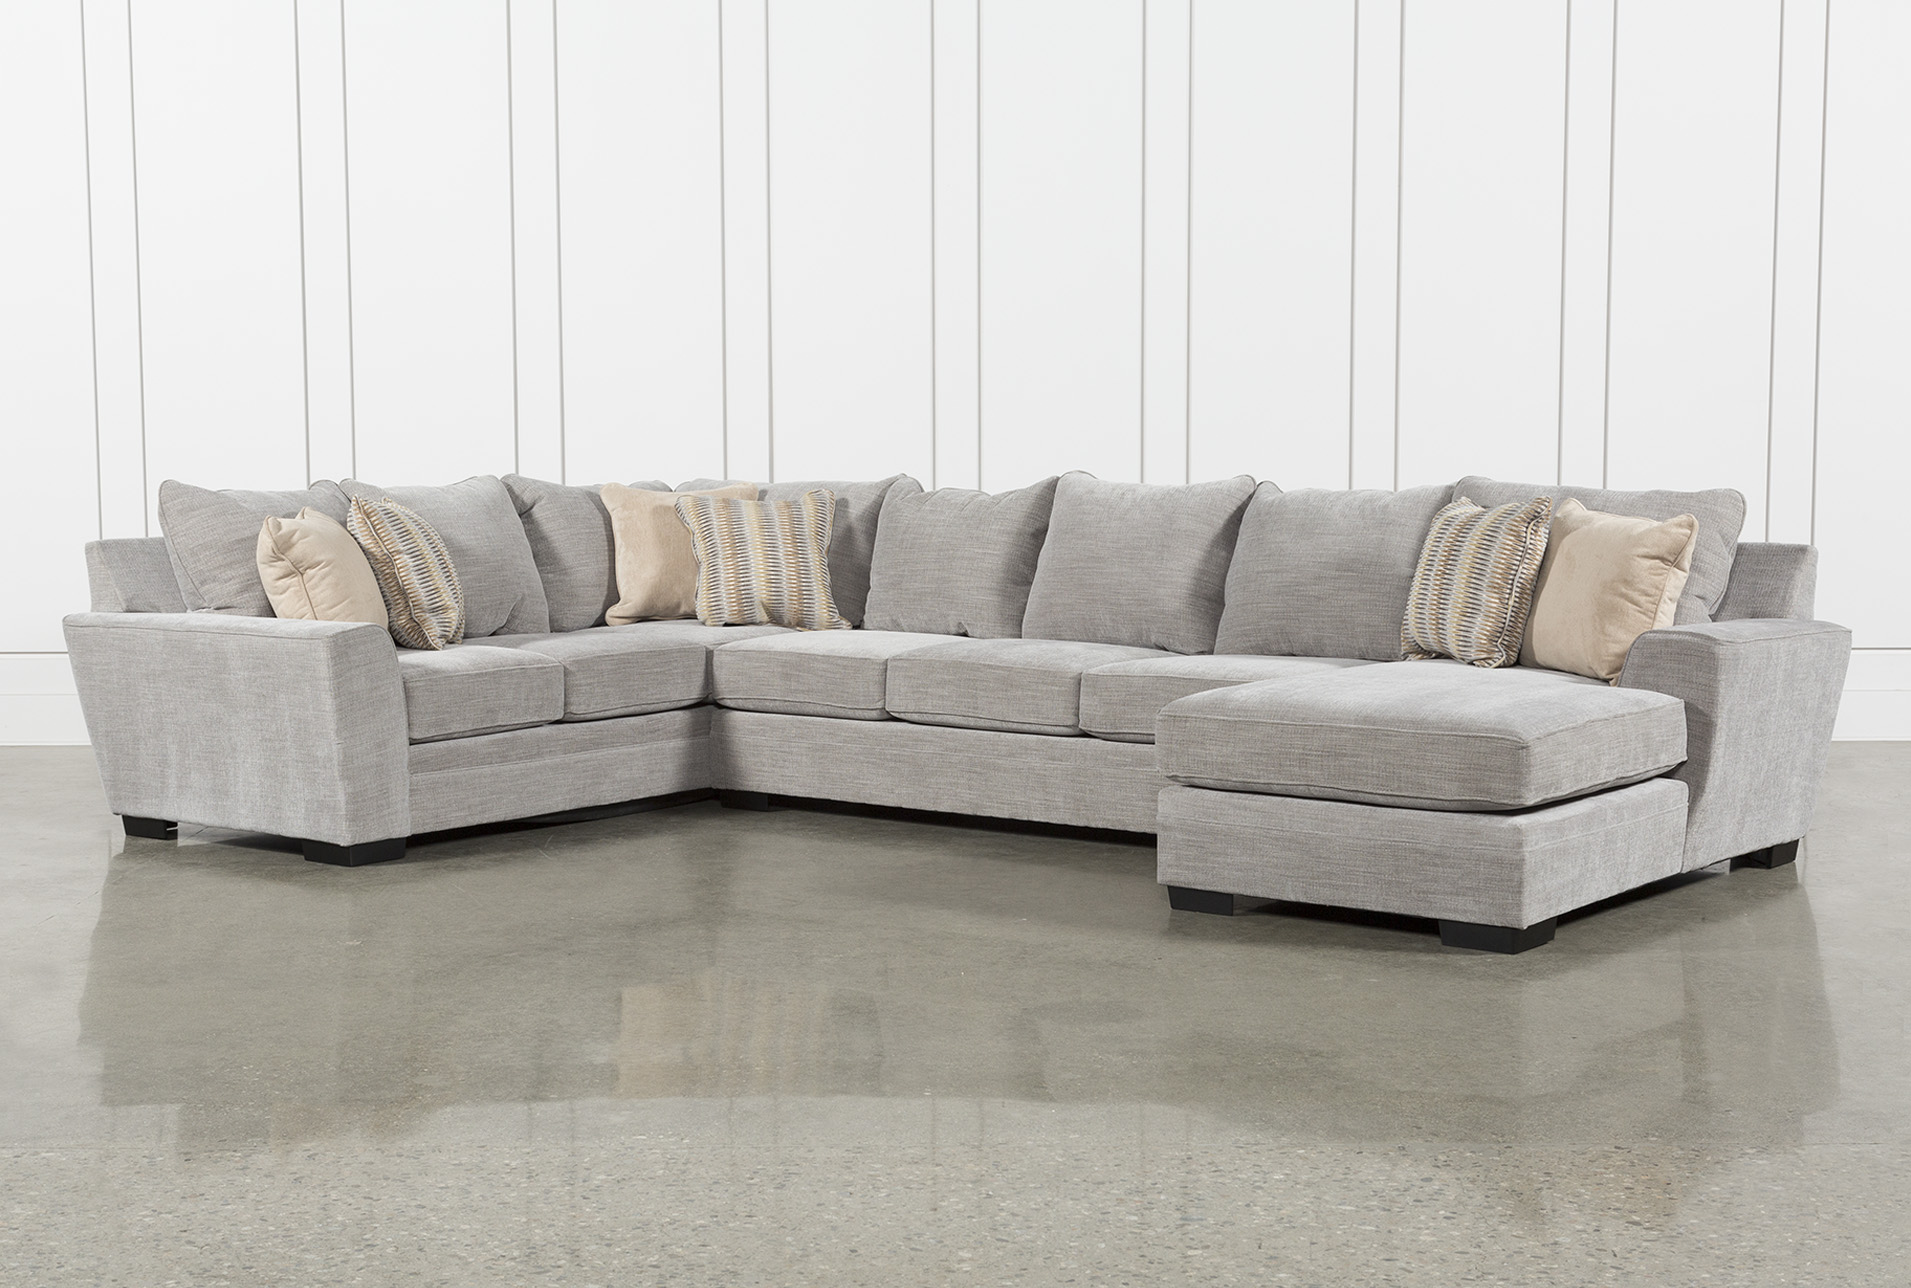 Fabric Sectionals & Sectional Sofas Displayed At La Mirada | Living